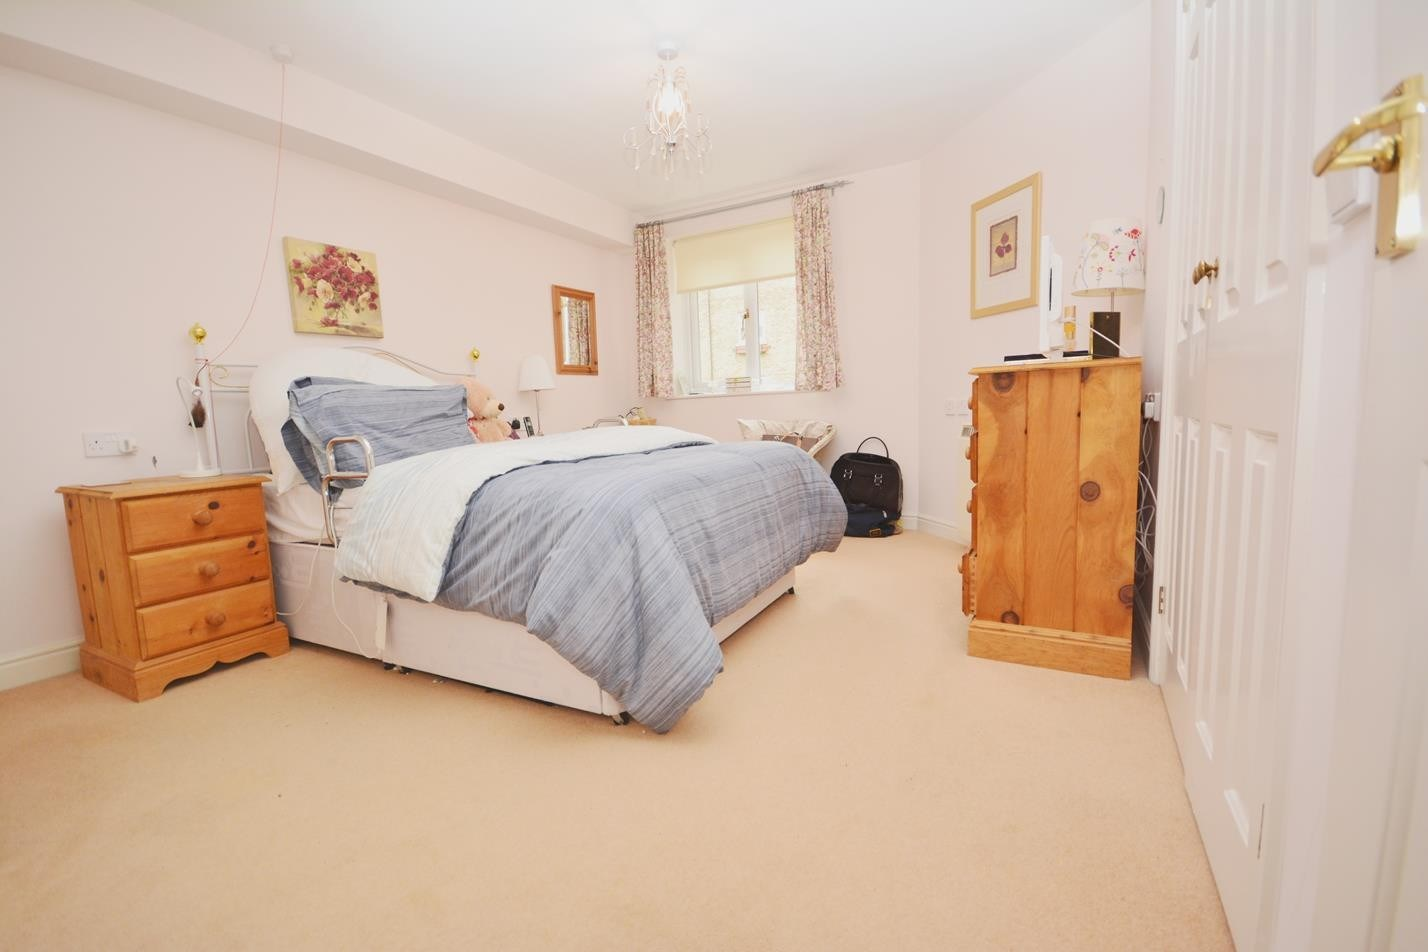 2 Bed Flat For Sale In Braintree